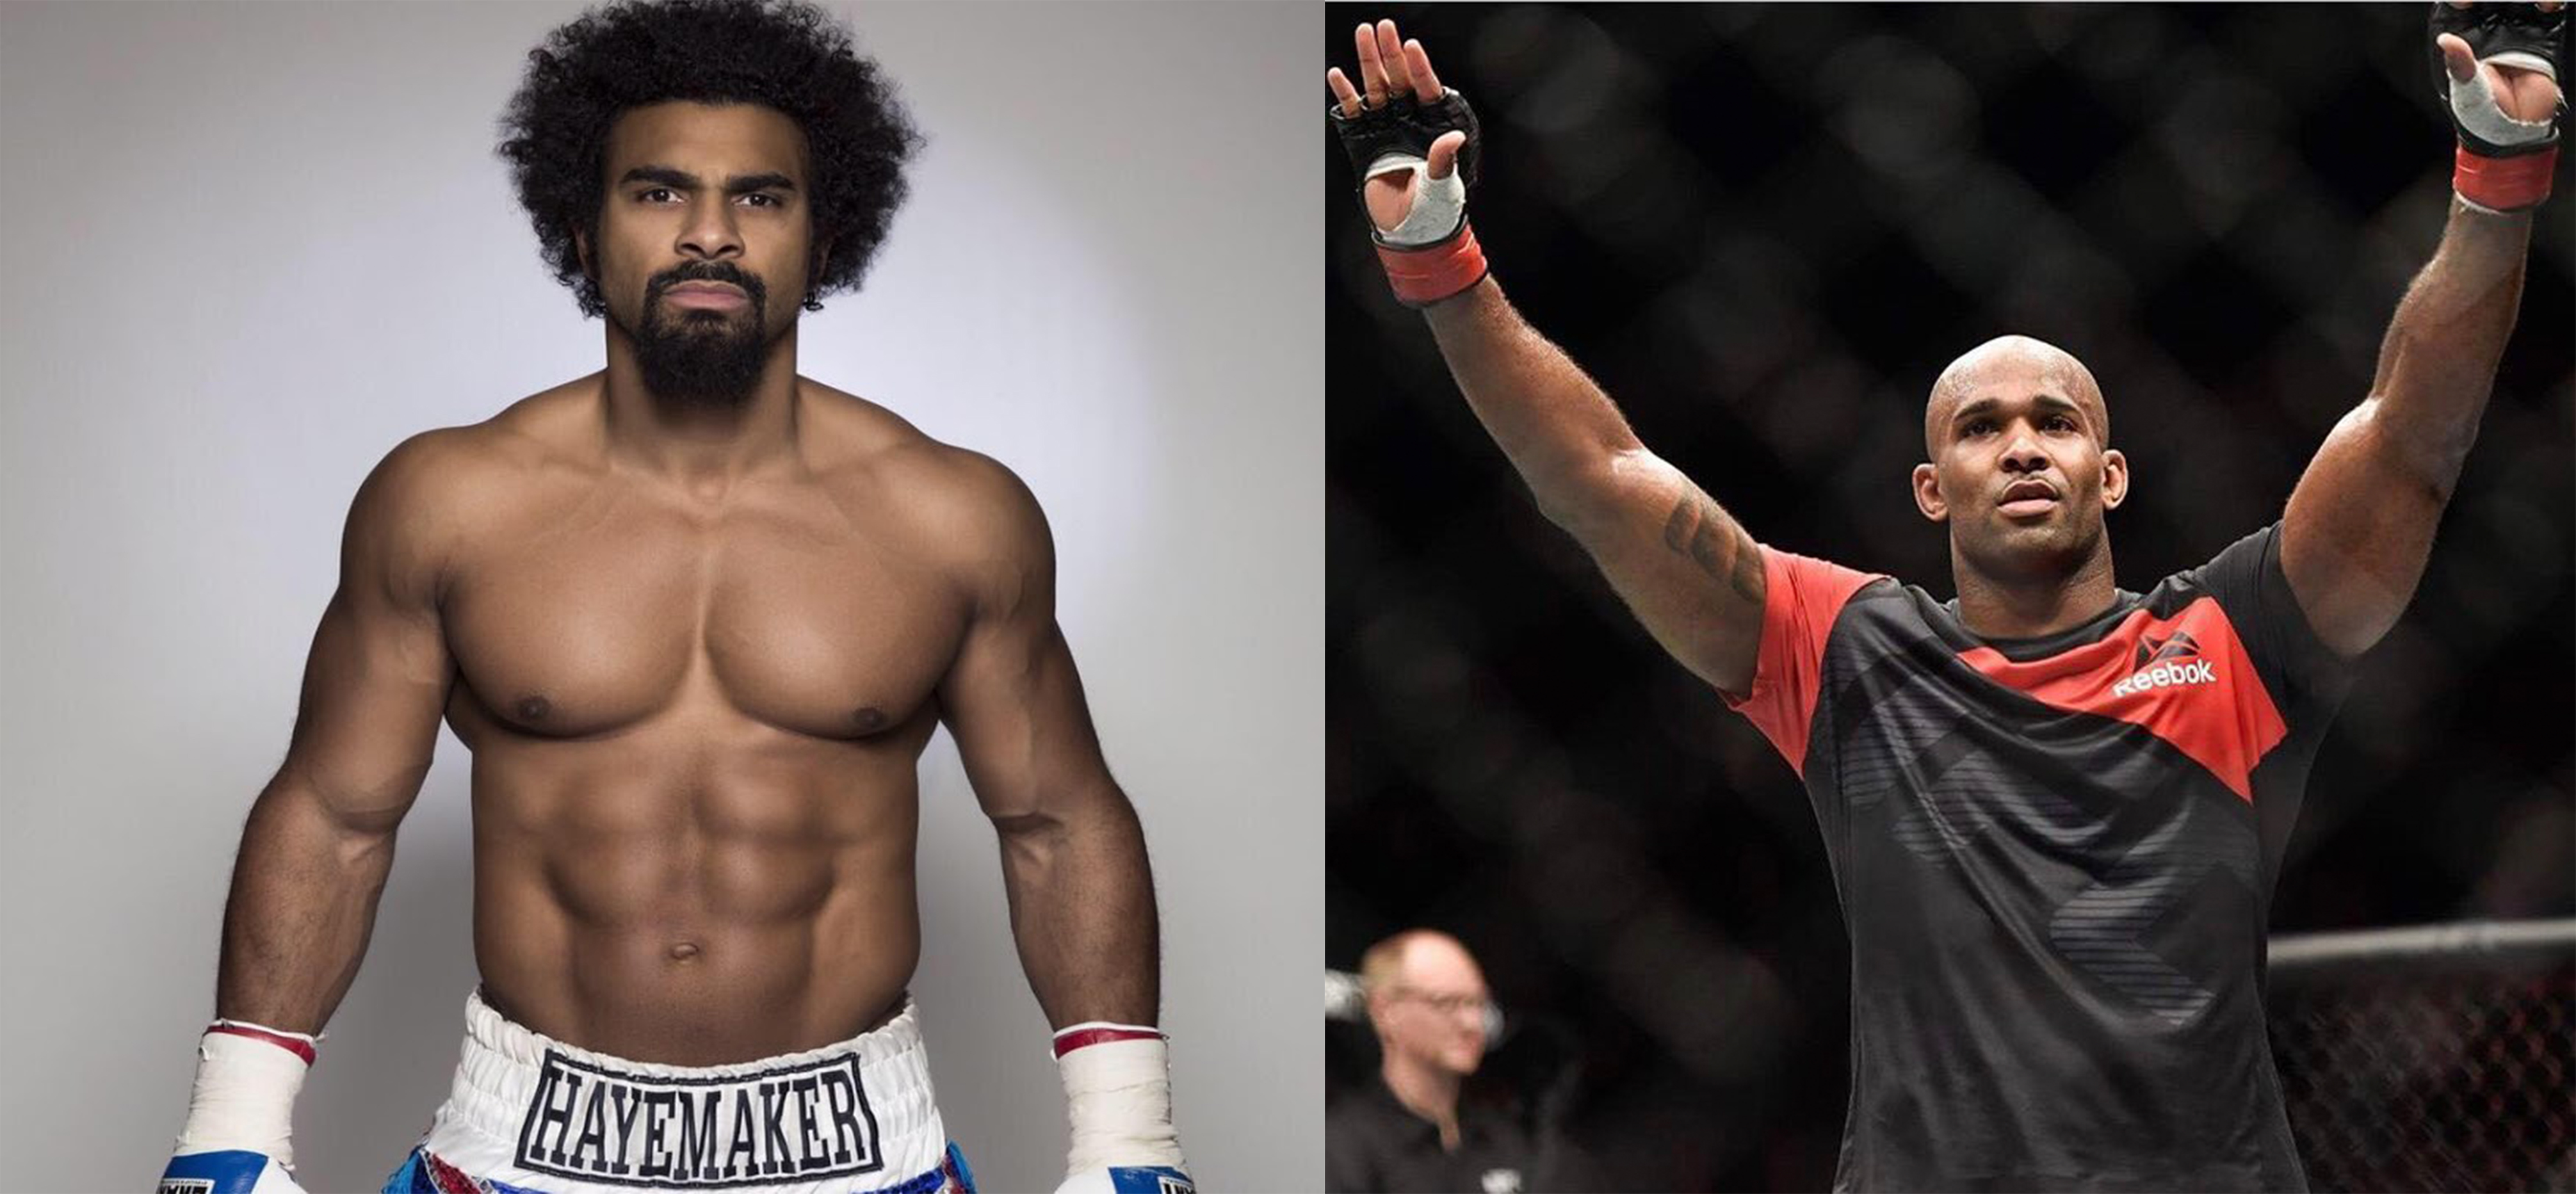 David Haye not only agrees to fight but praises Jimi Manuwa -